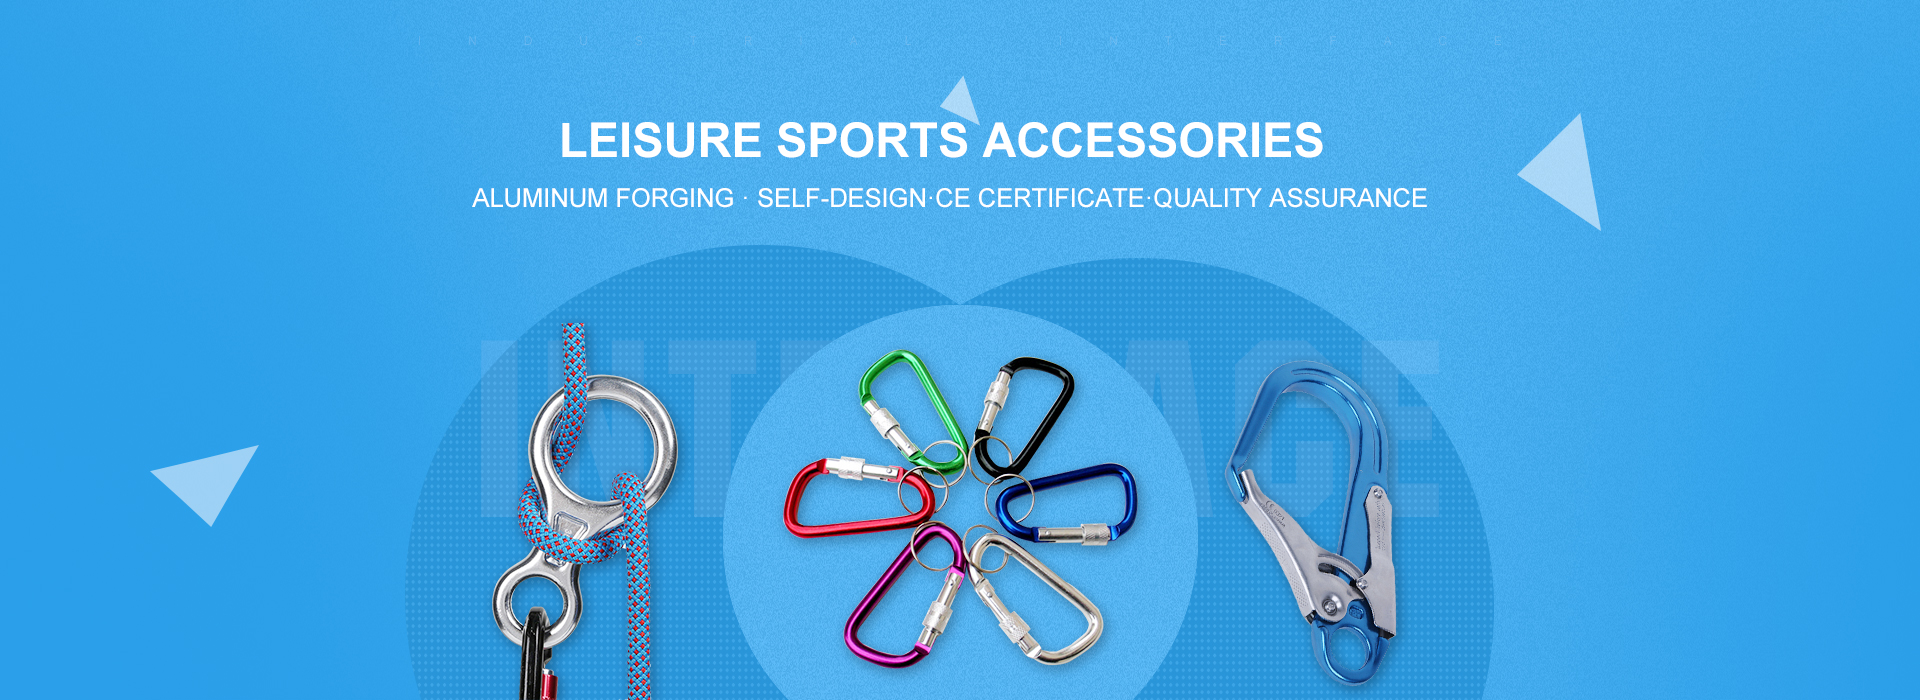 Leisure Sports Accessories